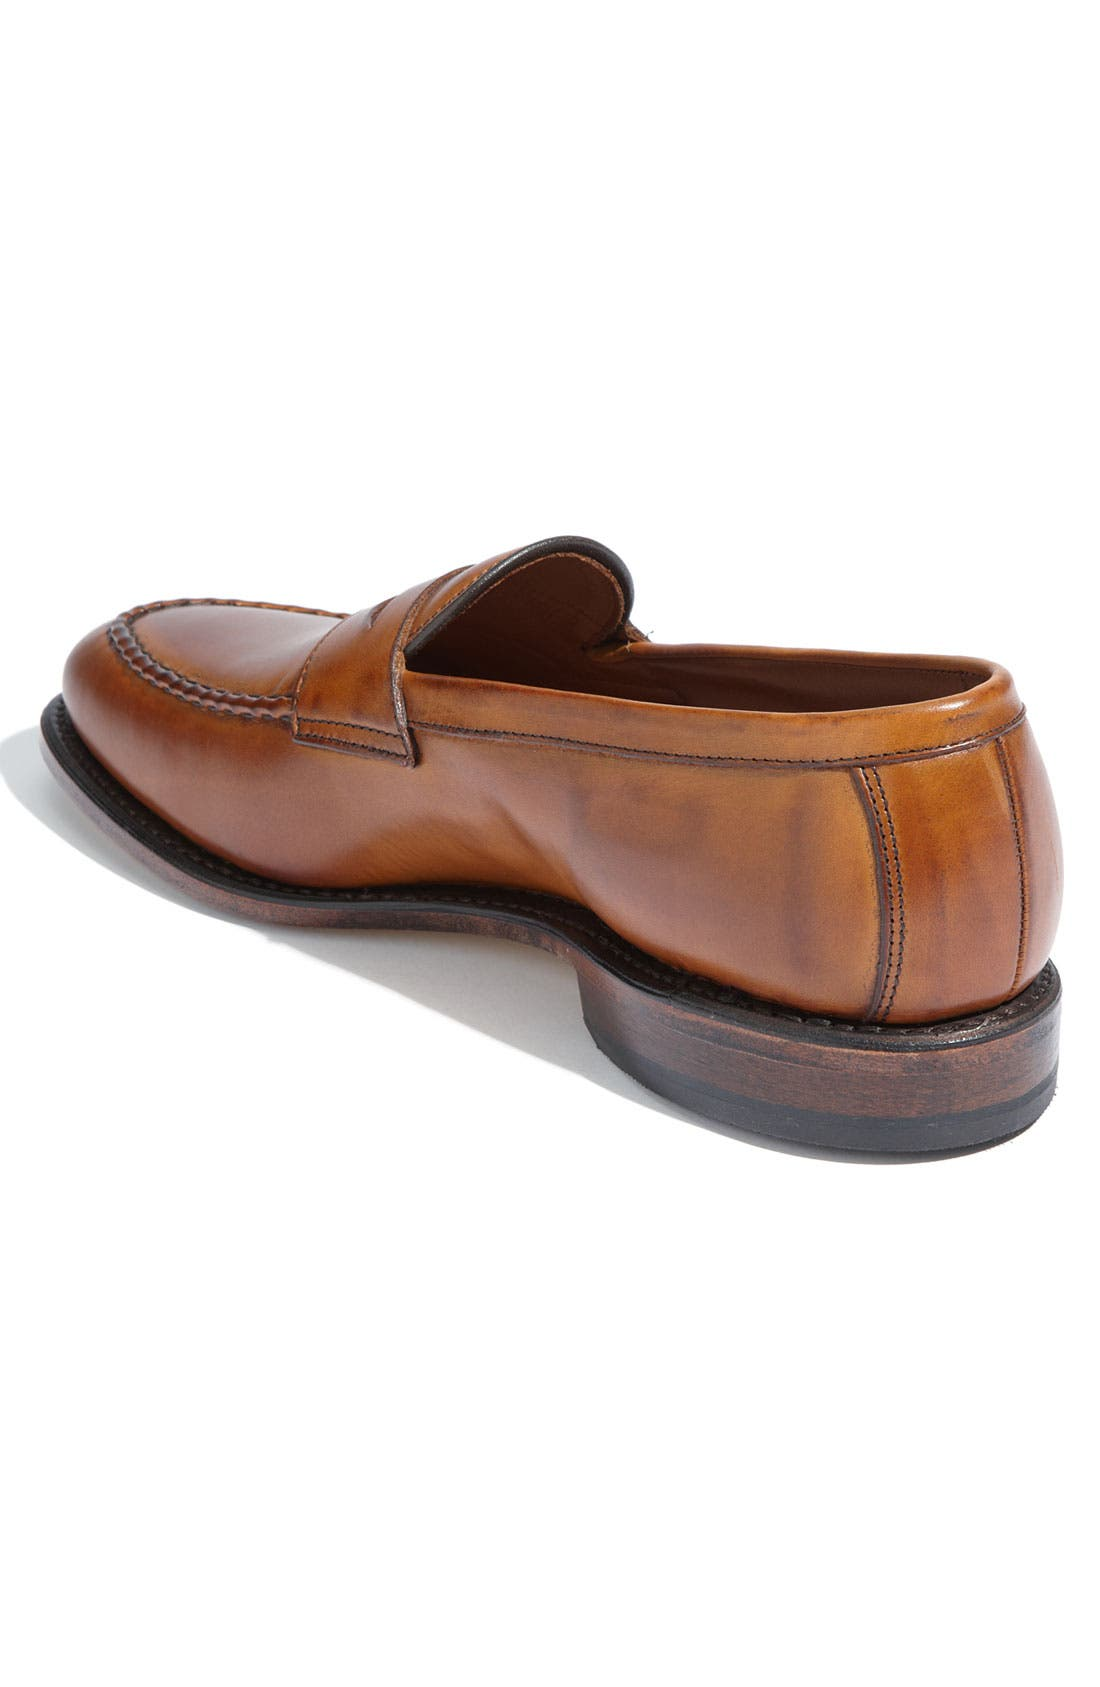 Alternate Image 3  - Allen Edmonds 'McGraw' Penny Loafer (Online Only)